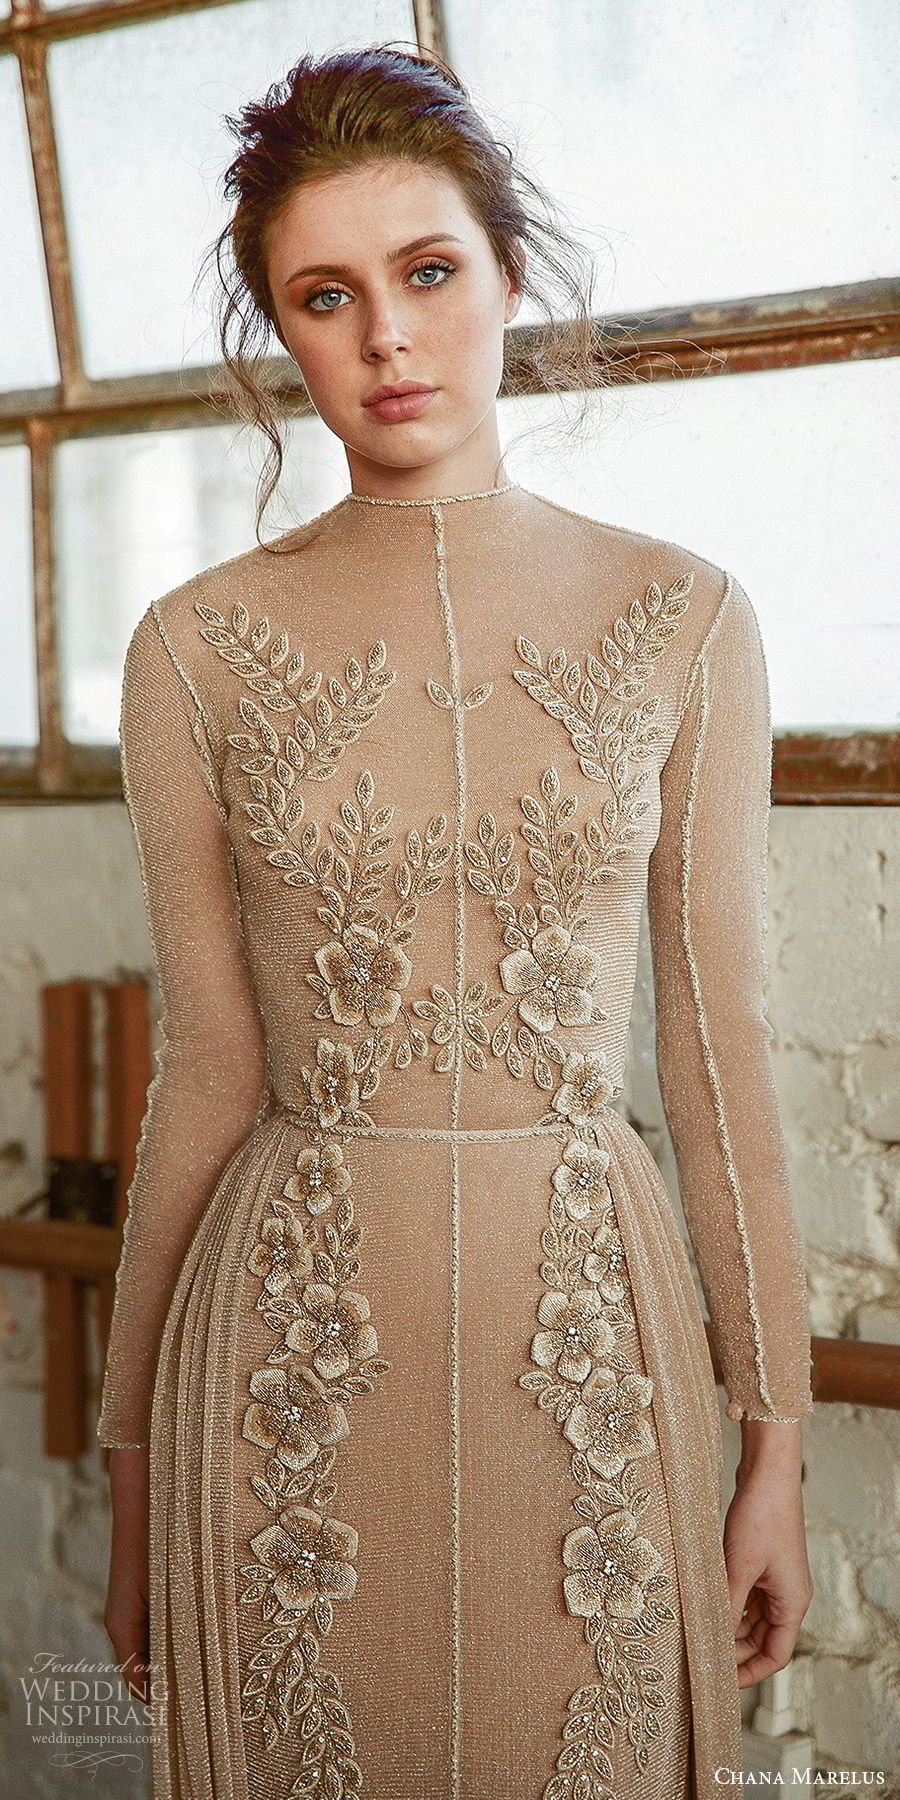 chana marelus fall 2019 bridal illusion long sleeves high neck sheer bodice fully embellished sheath a line wedding dress (10) beige color modern elegant zv